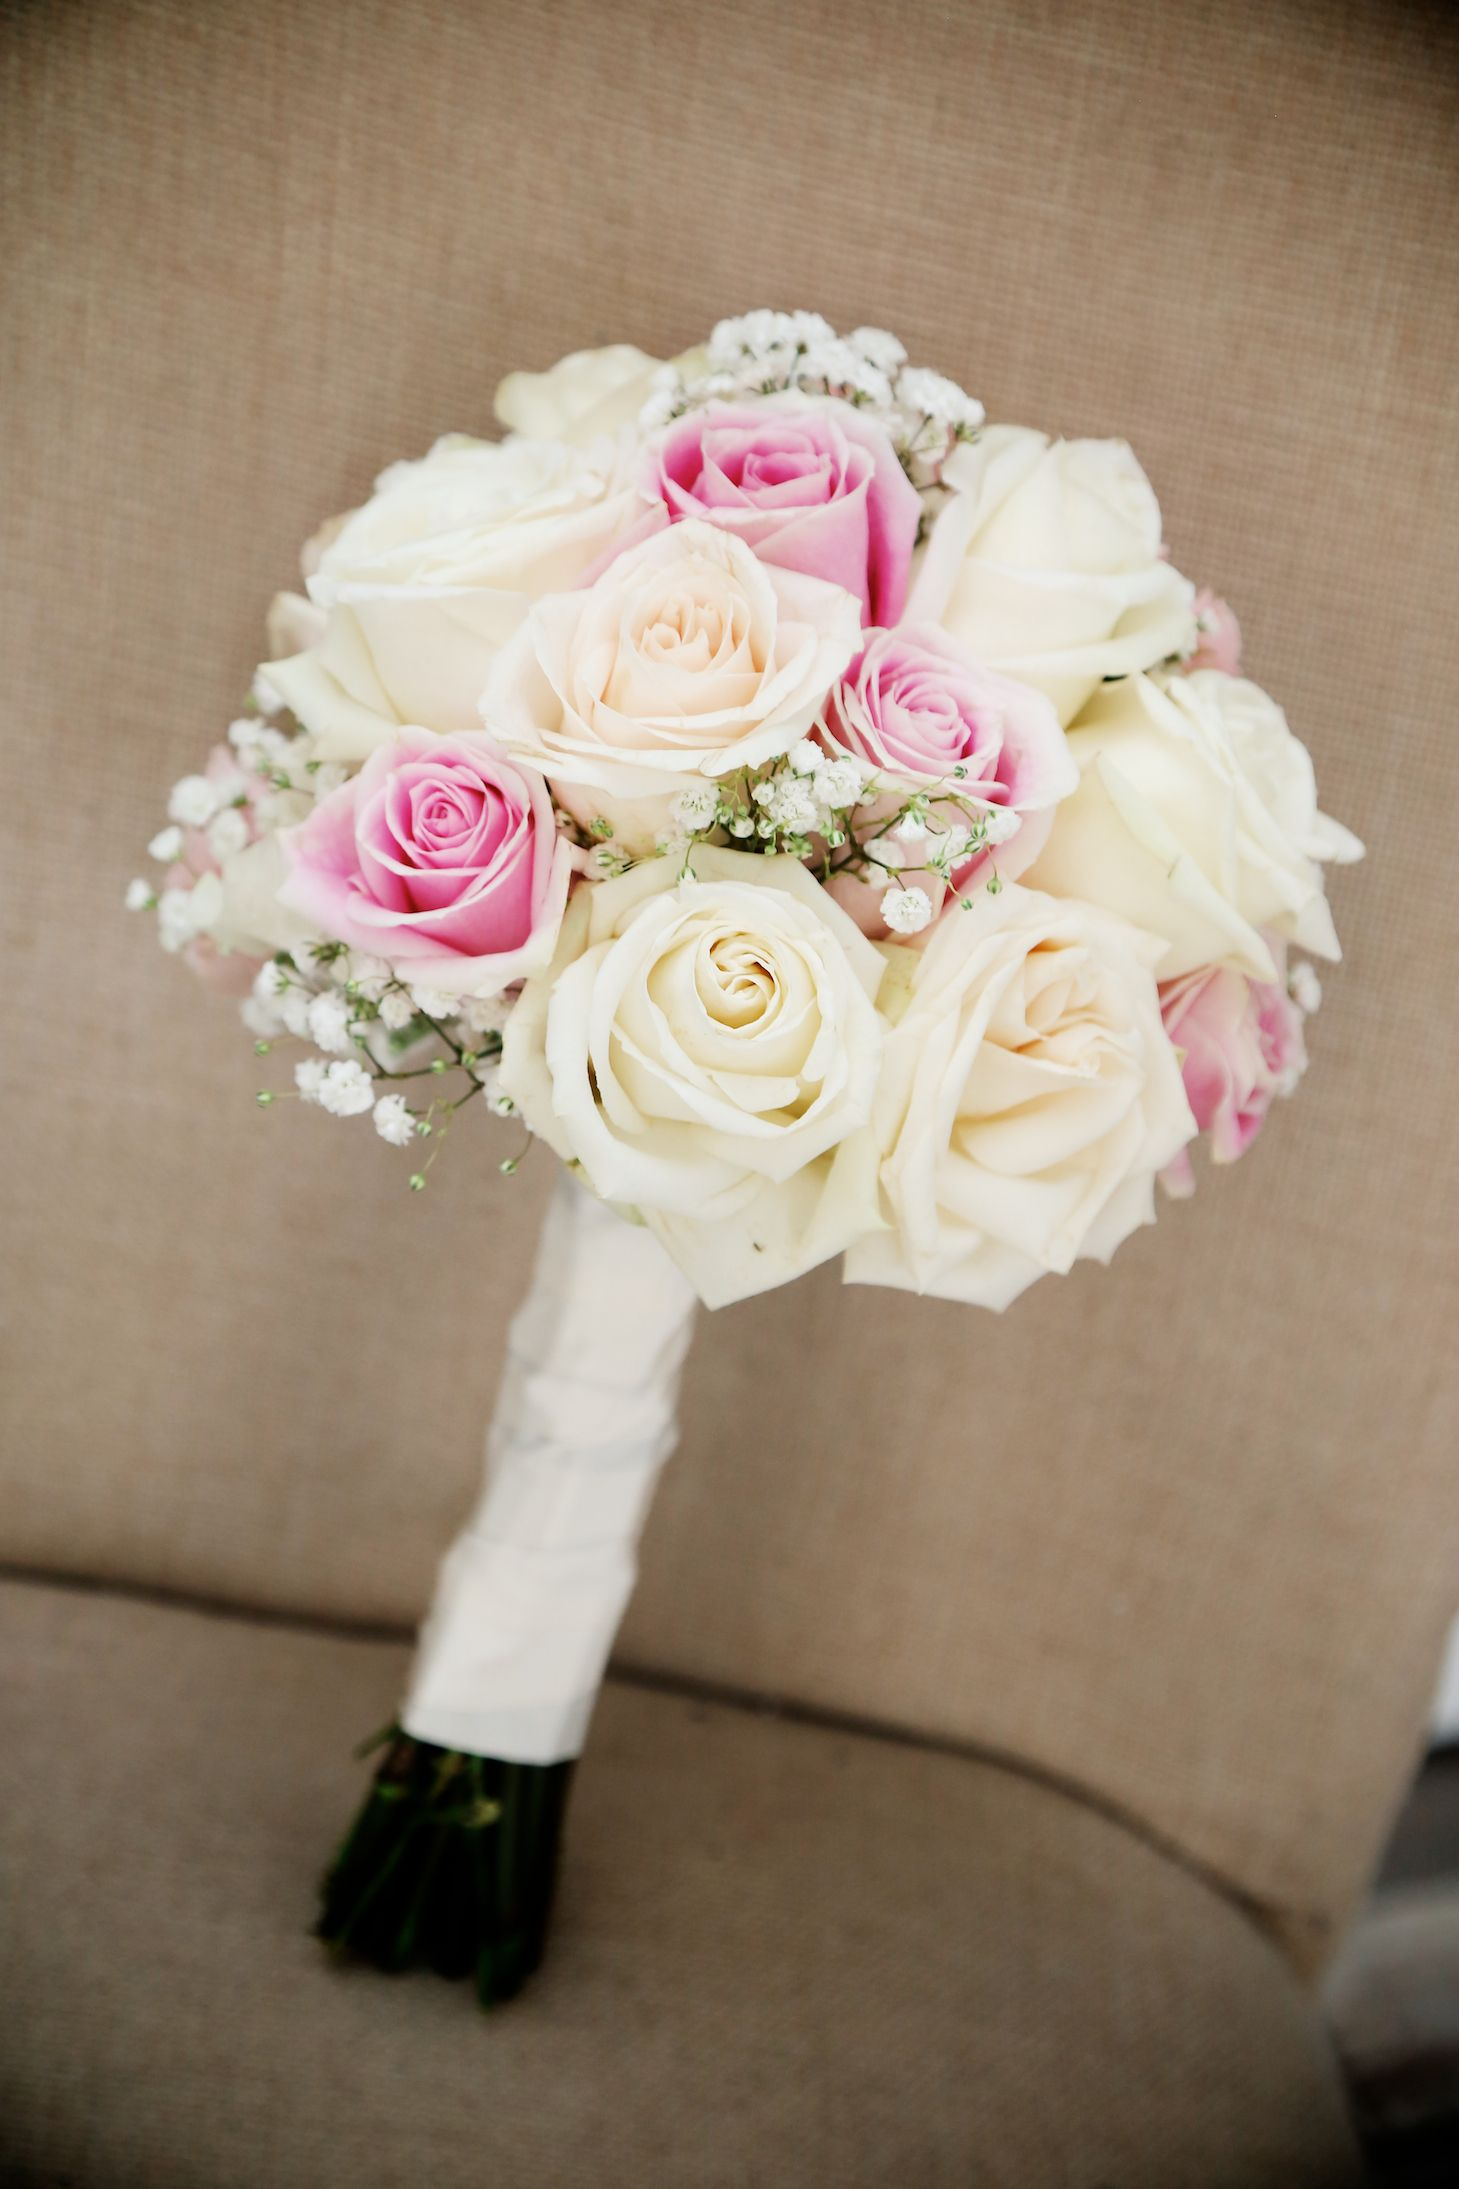 Hand Tied White And Soft Pink Garden Rose Bouquet With Babies Breath By Sunshine Wedding Company Photography Rose Bouquet White Rose Bouquet Pink Rose Bouquet